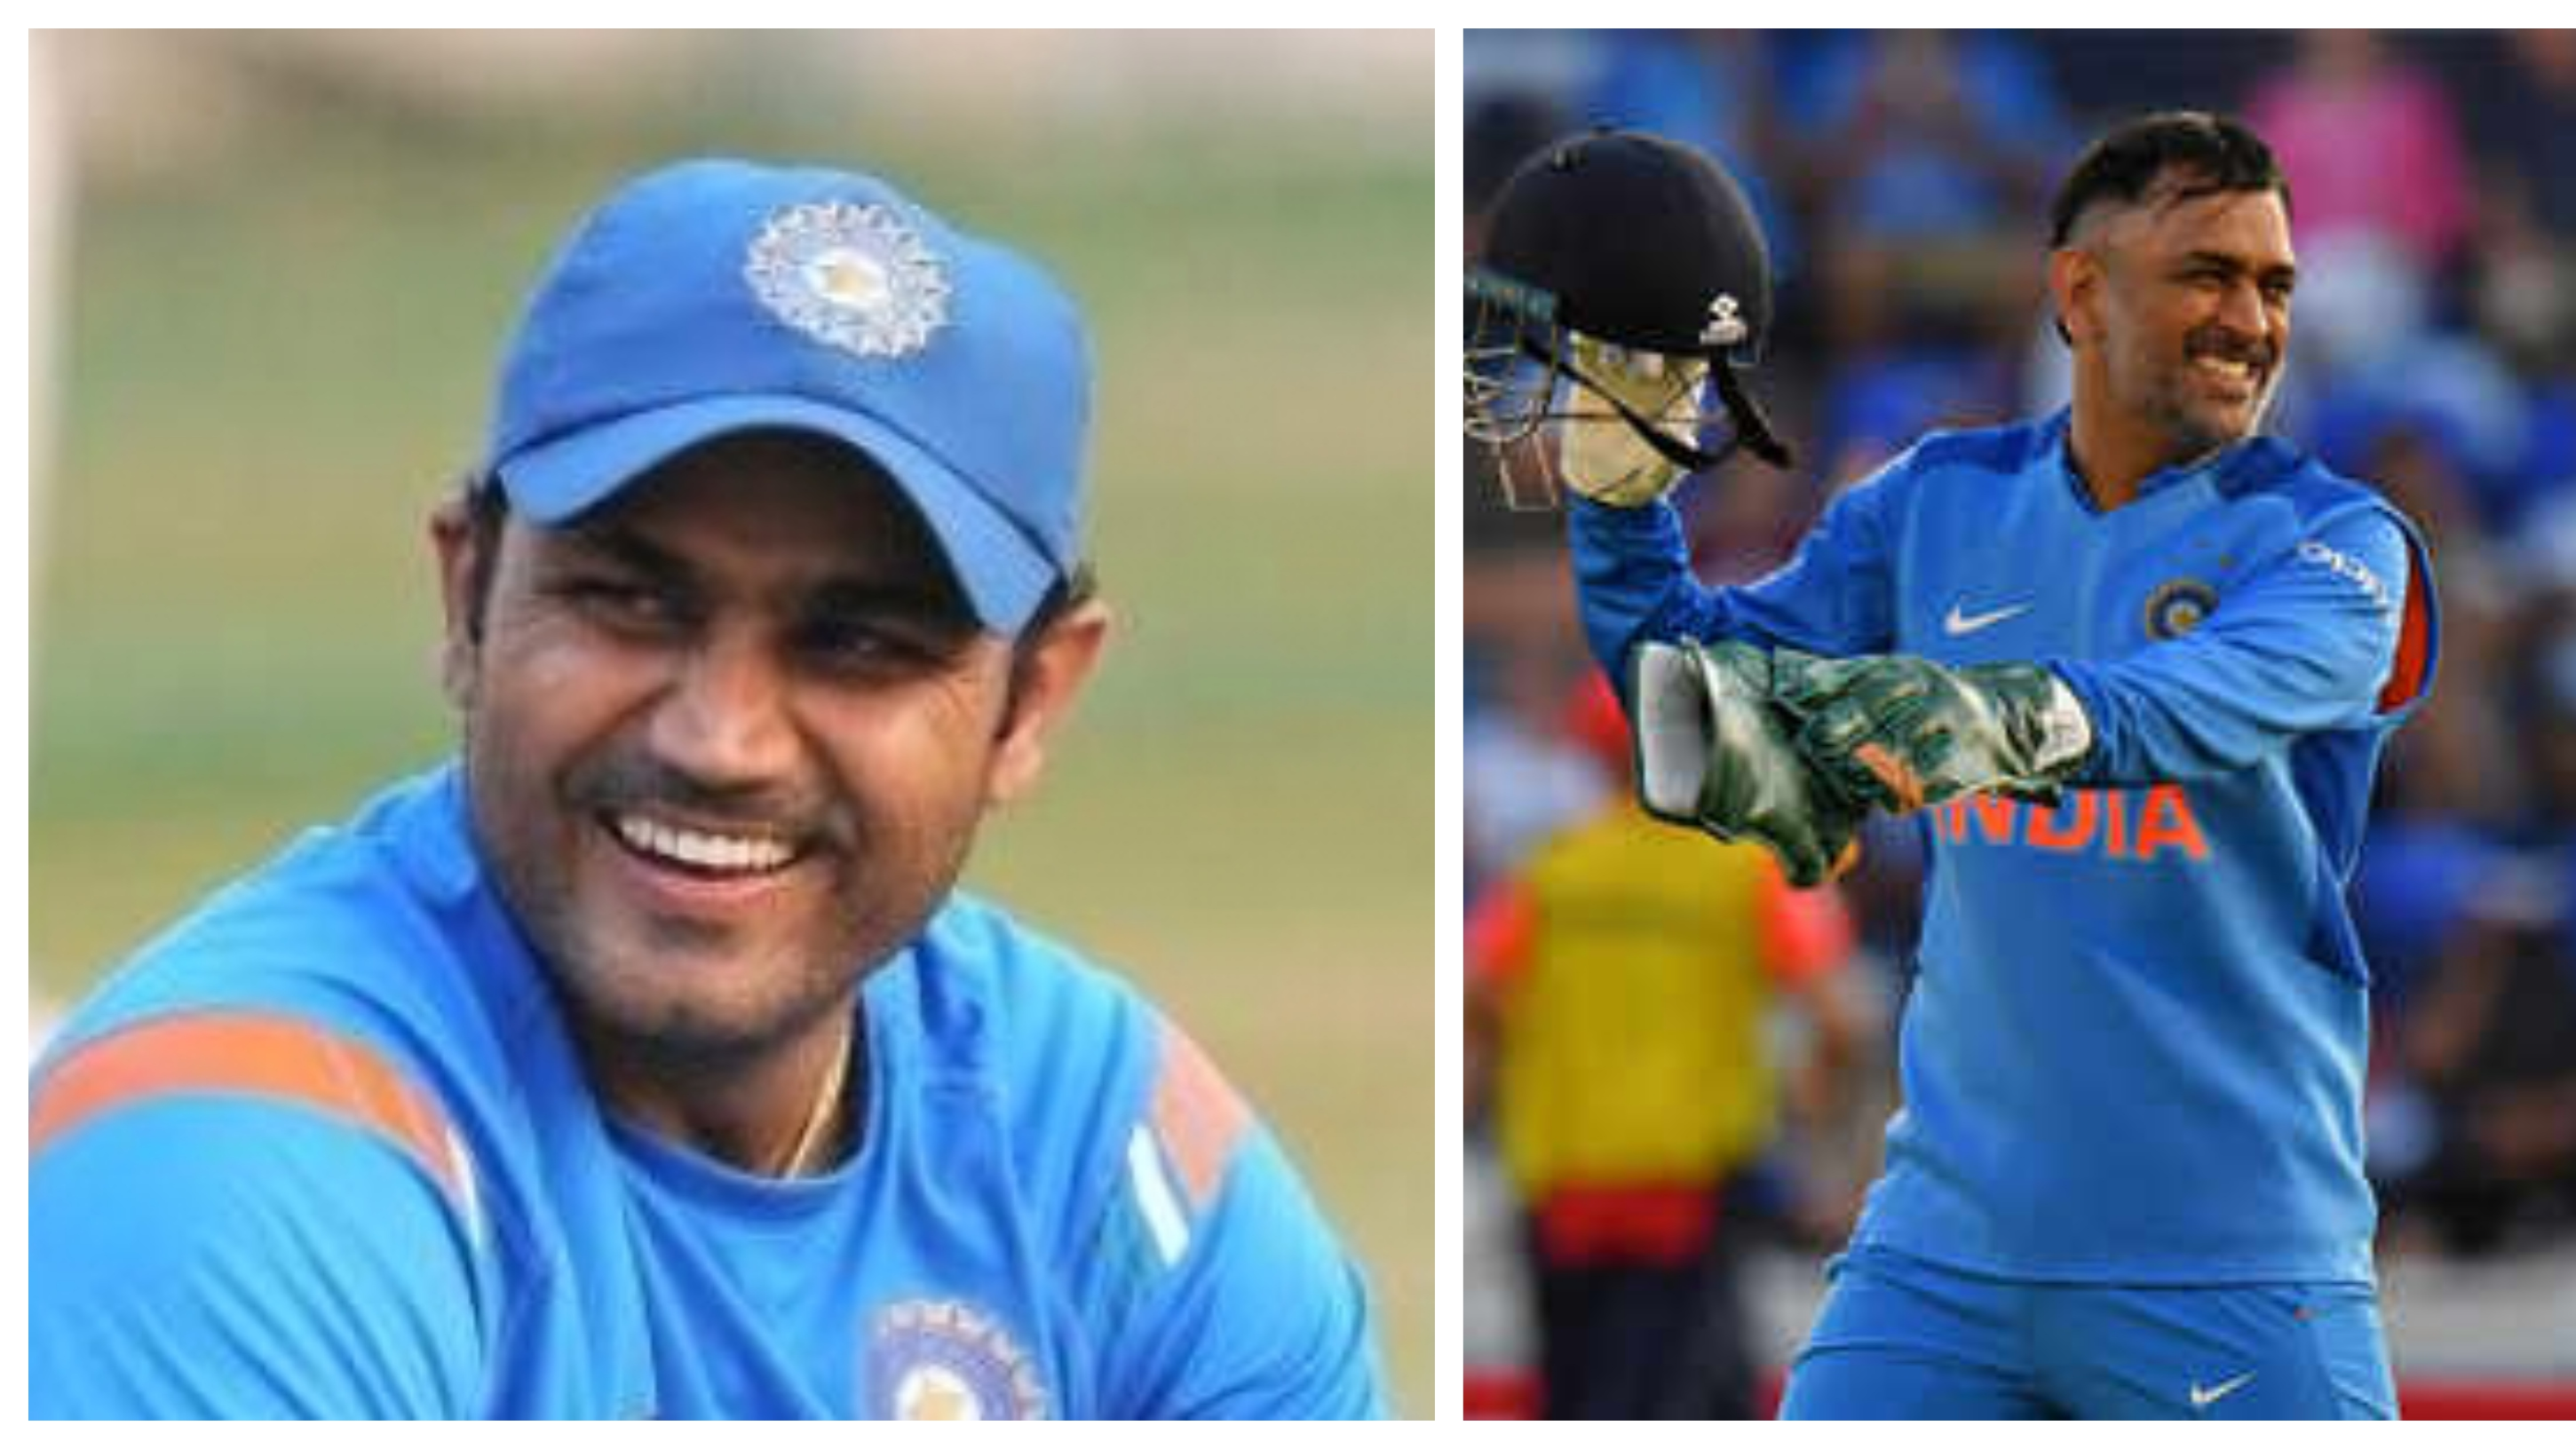 Virender Sehwag slams a fan over his comments on Mahendra Singh Dhoni